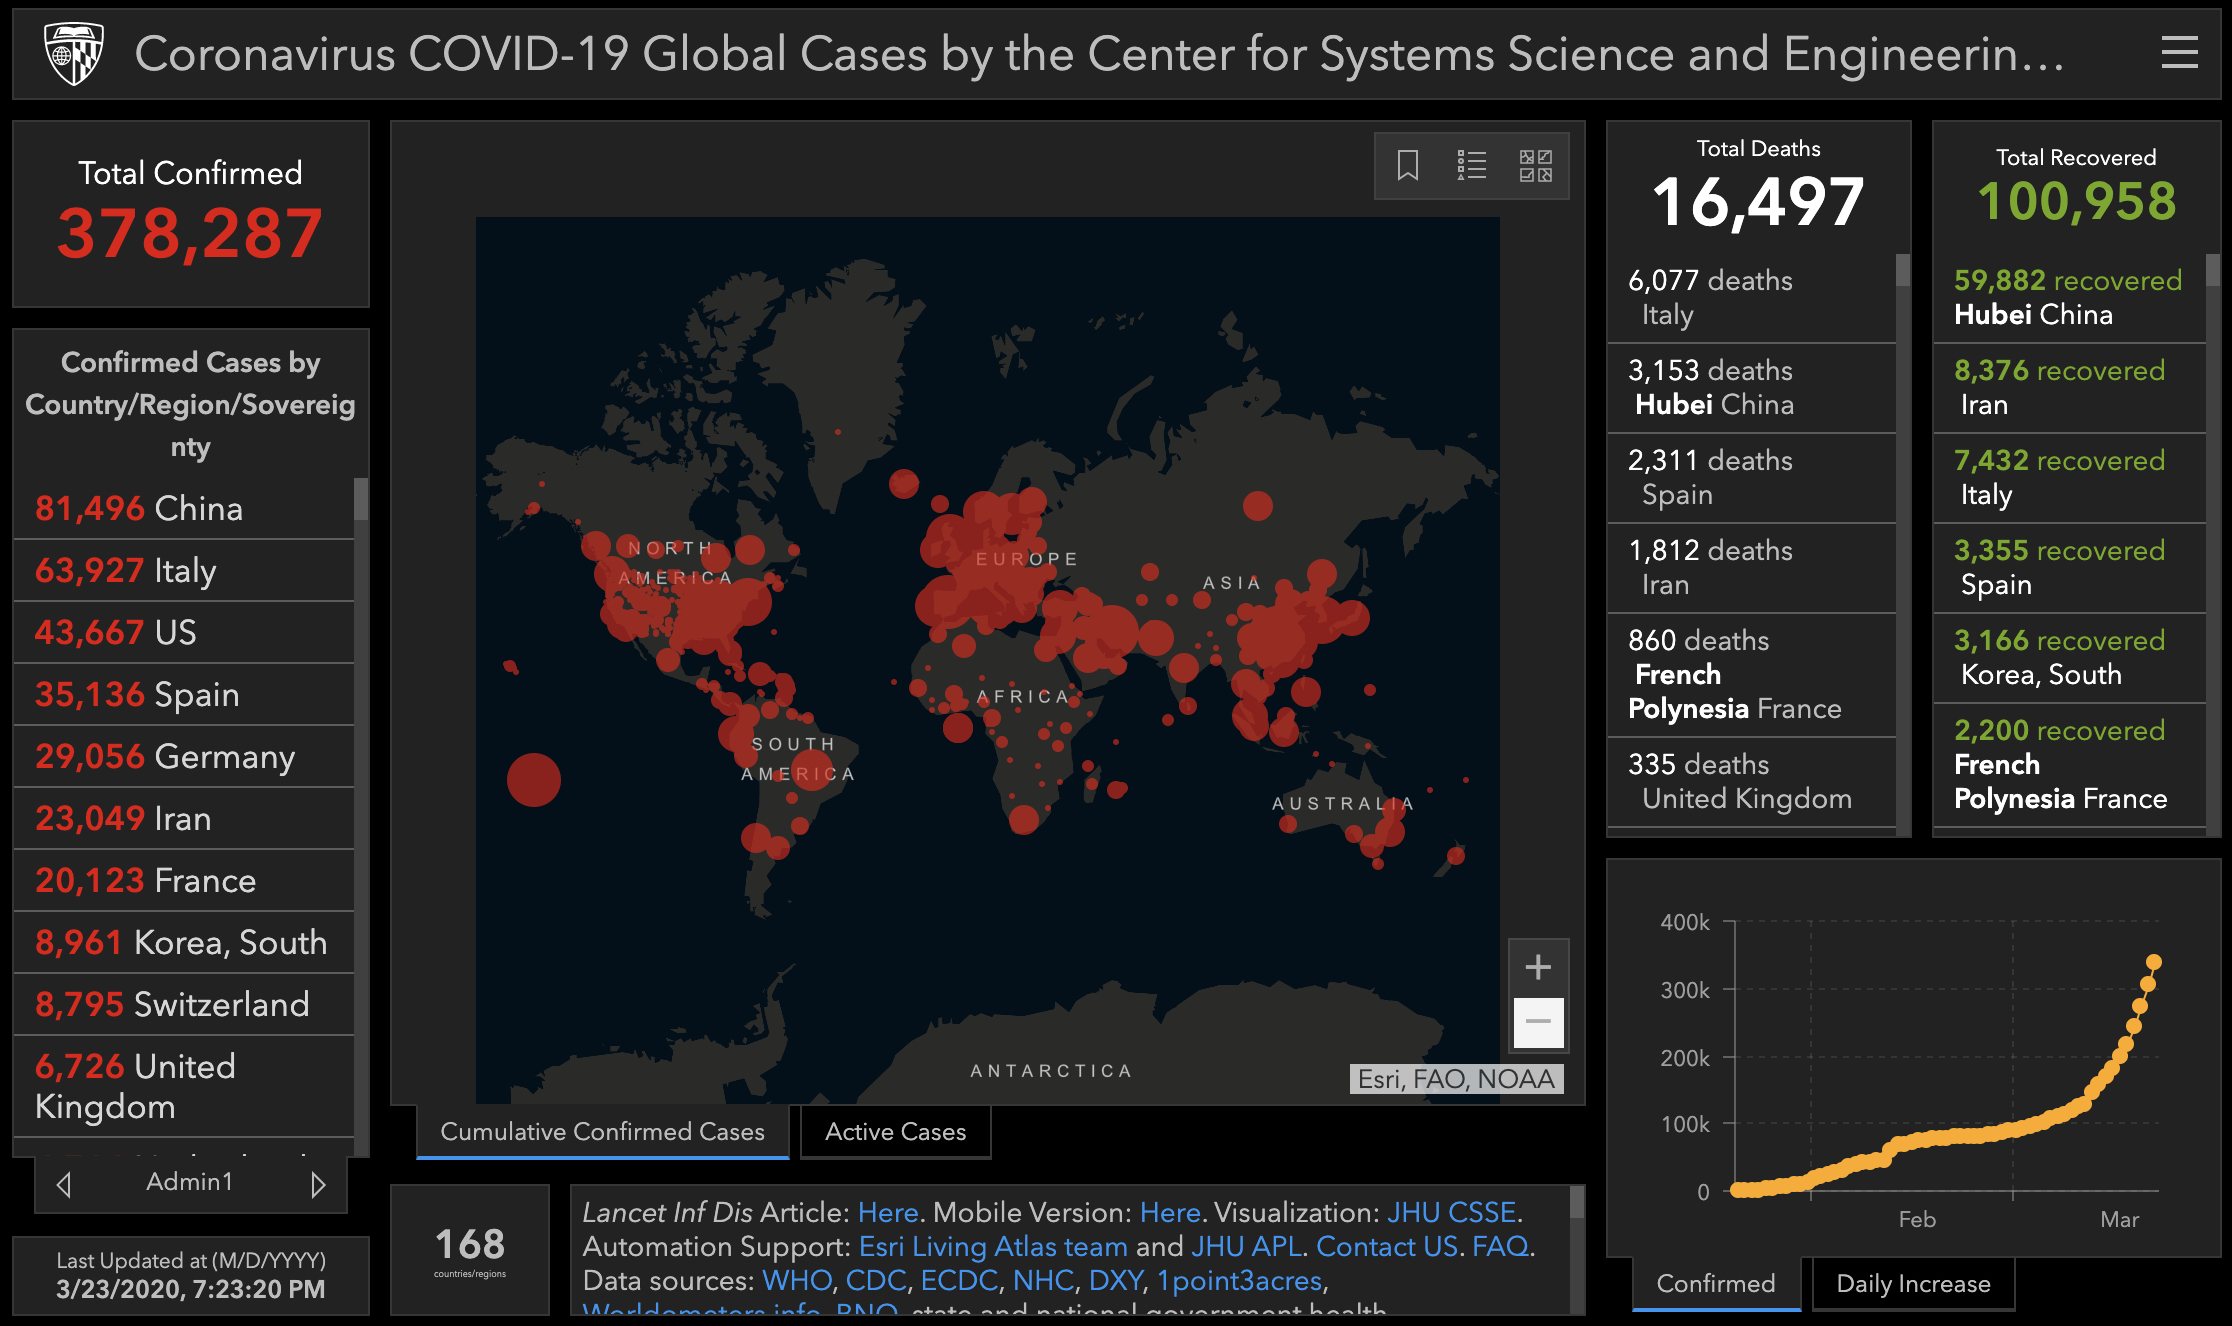 COVID-19: Using Data to Map Infections, Hospital Beds, and More